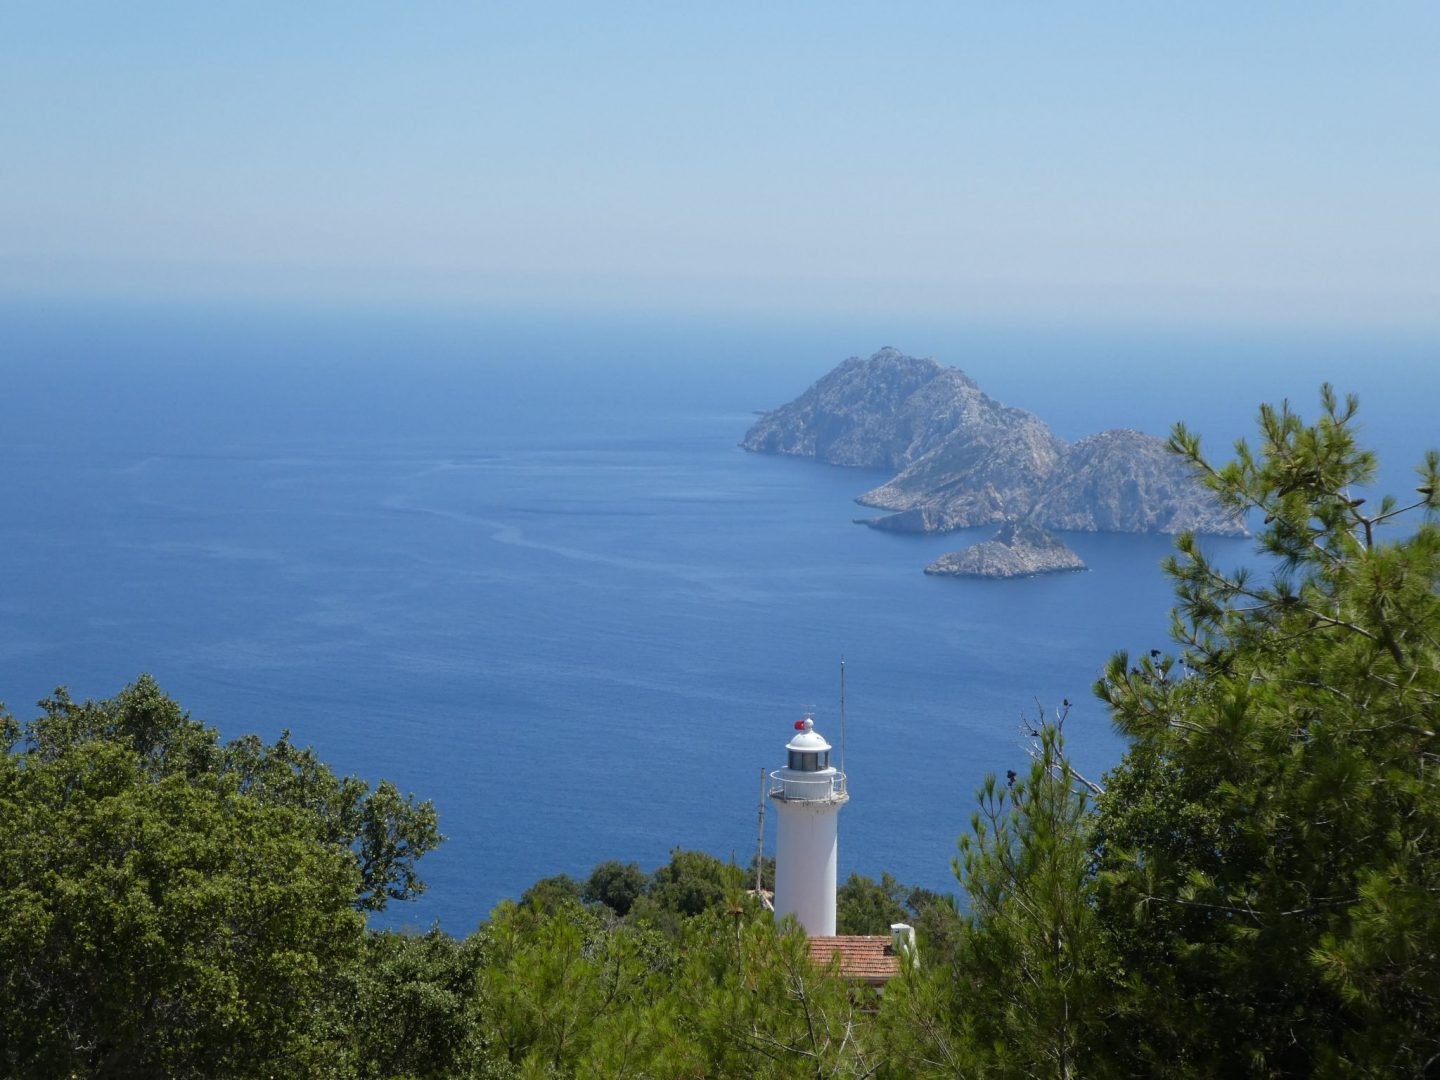 Lycian Way East (1 to 10 June 2019)